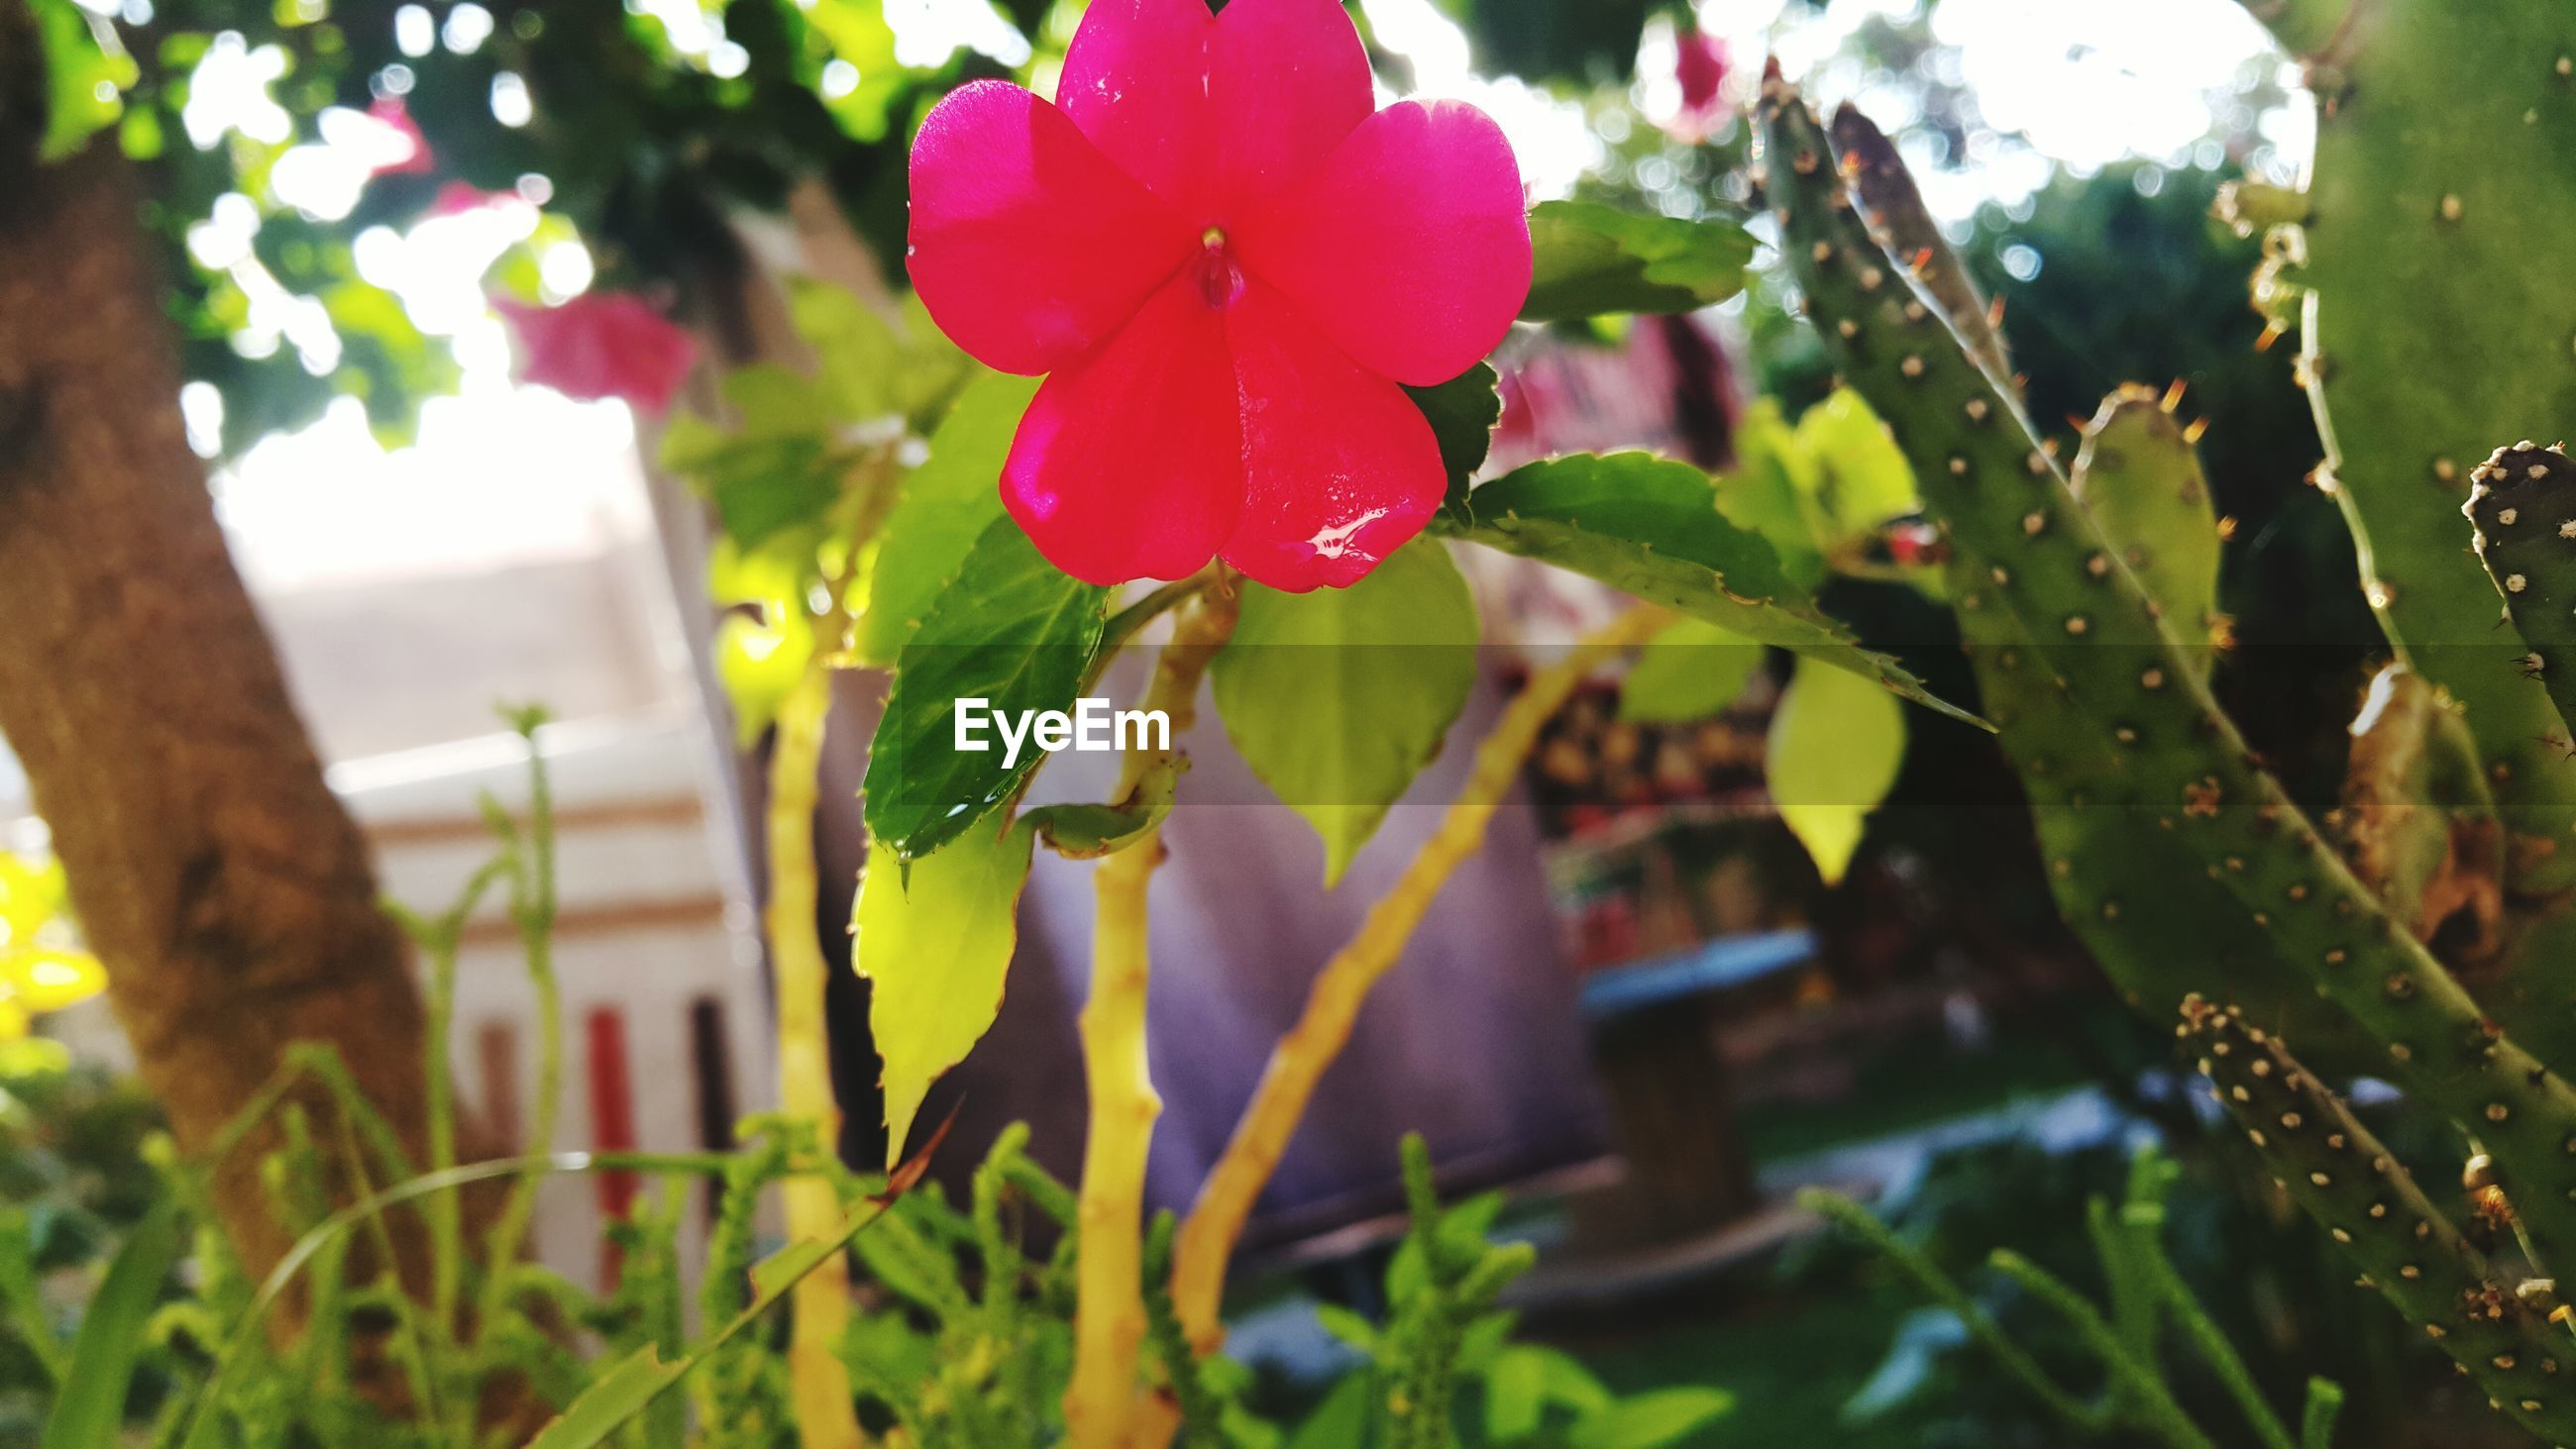 growth, plant, flower, leaf, freshness, focus on foreground, close-up, fragility, nature, beauty in nature, front or back yard, petal, blooming, day, outdoors, green color, stem, selective focus, no people, growing